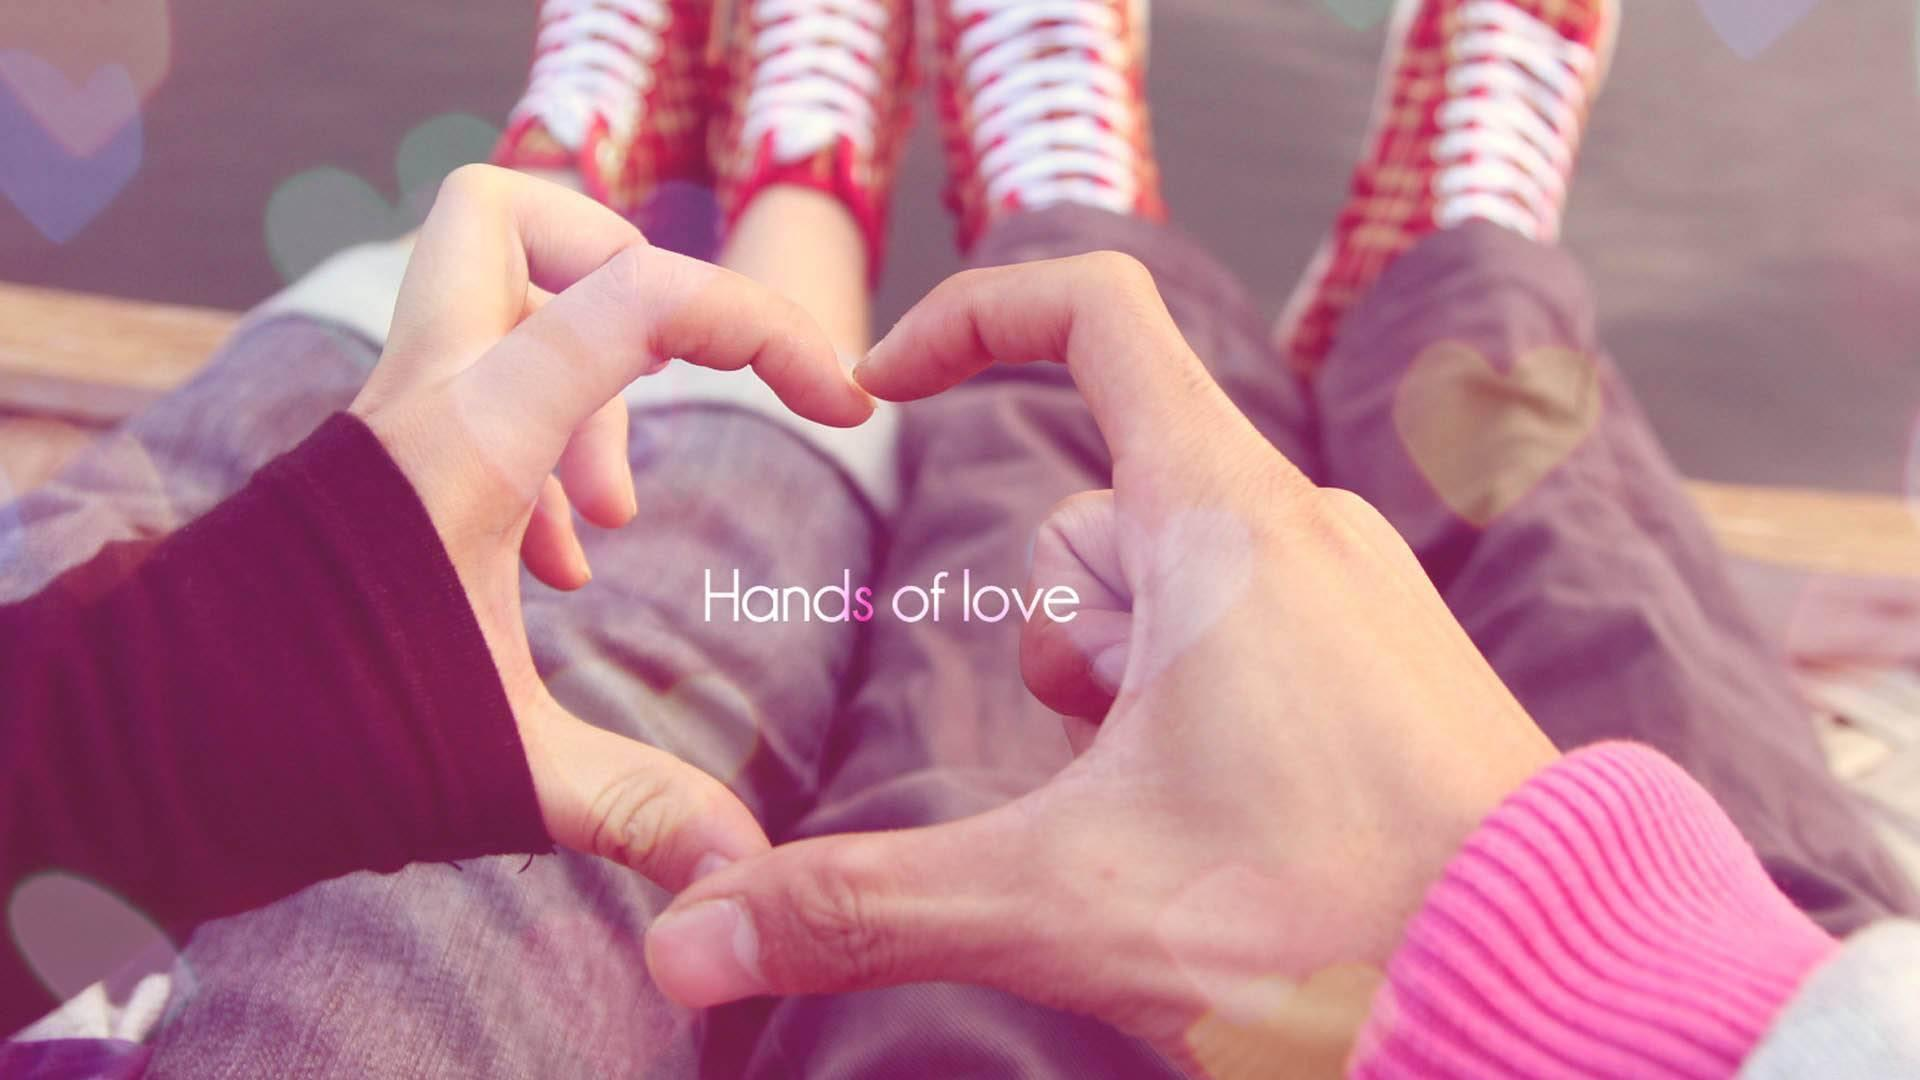 Обои Hands of love 1920x1080